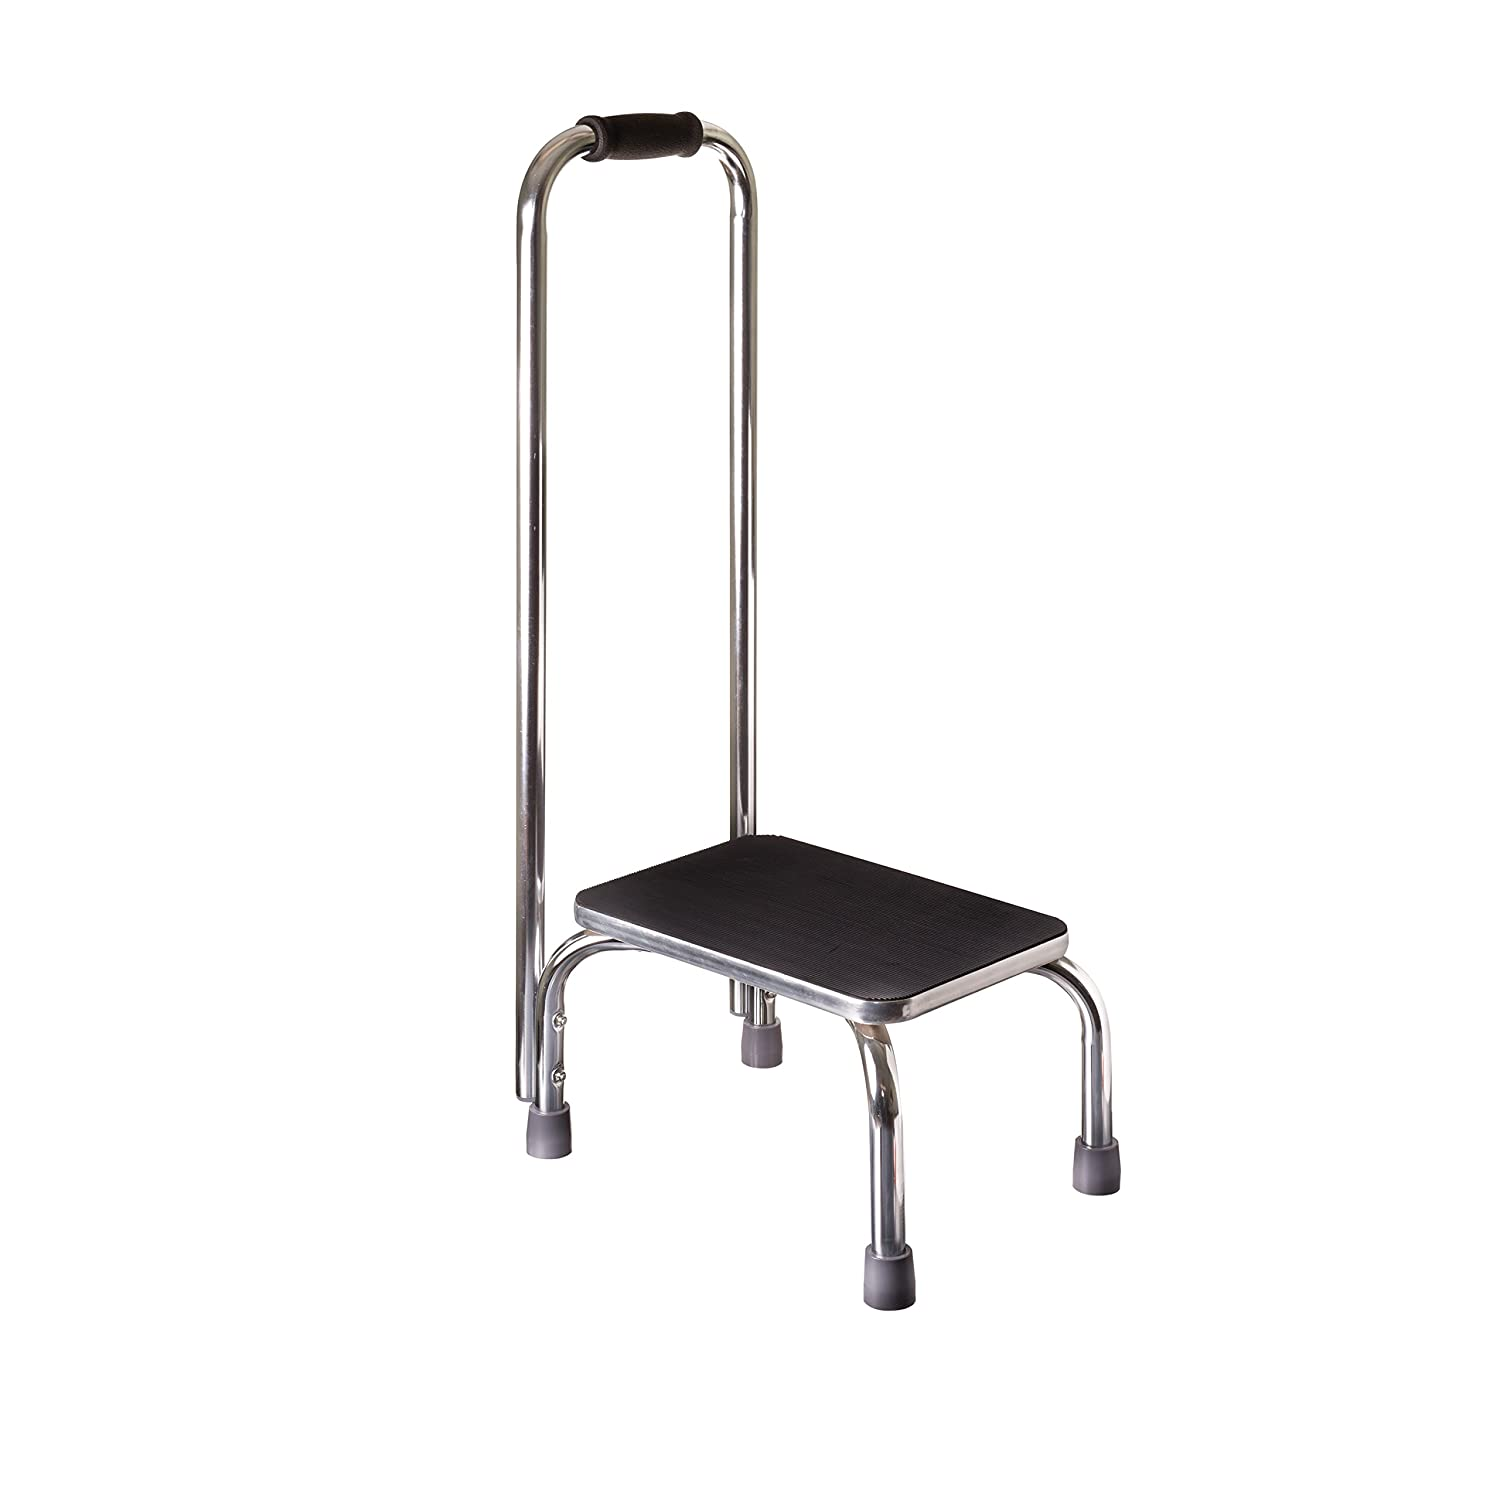 Amazon.com Duro-Med Step Stool with Handle Silver and Black Medical Step Stool Health u0026 Personal Care  sc 1 st  Amazon.com & Amazon.com: Duro-Med Step Stool with Handle Silver and Black ... islam-shia.org